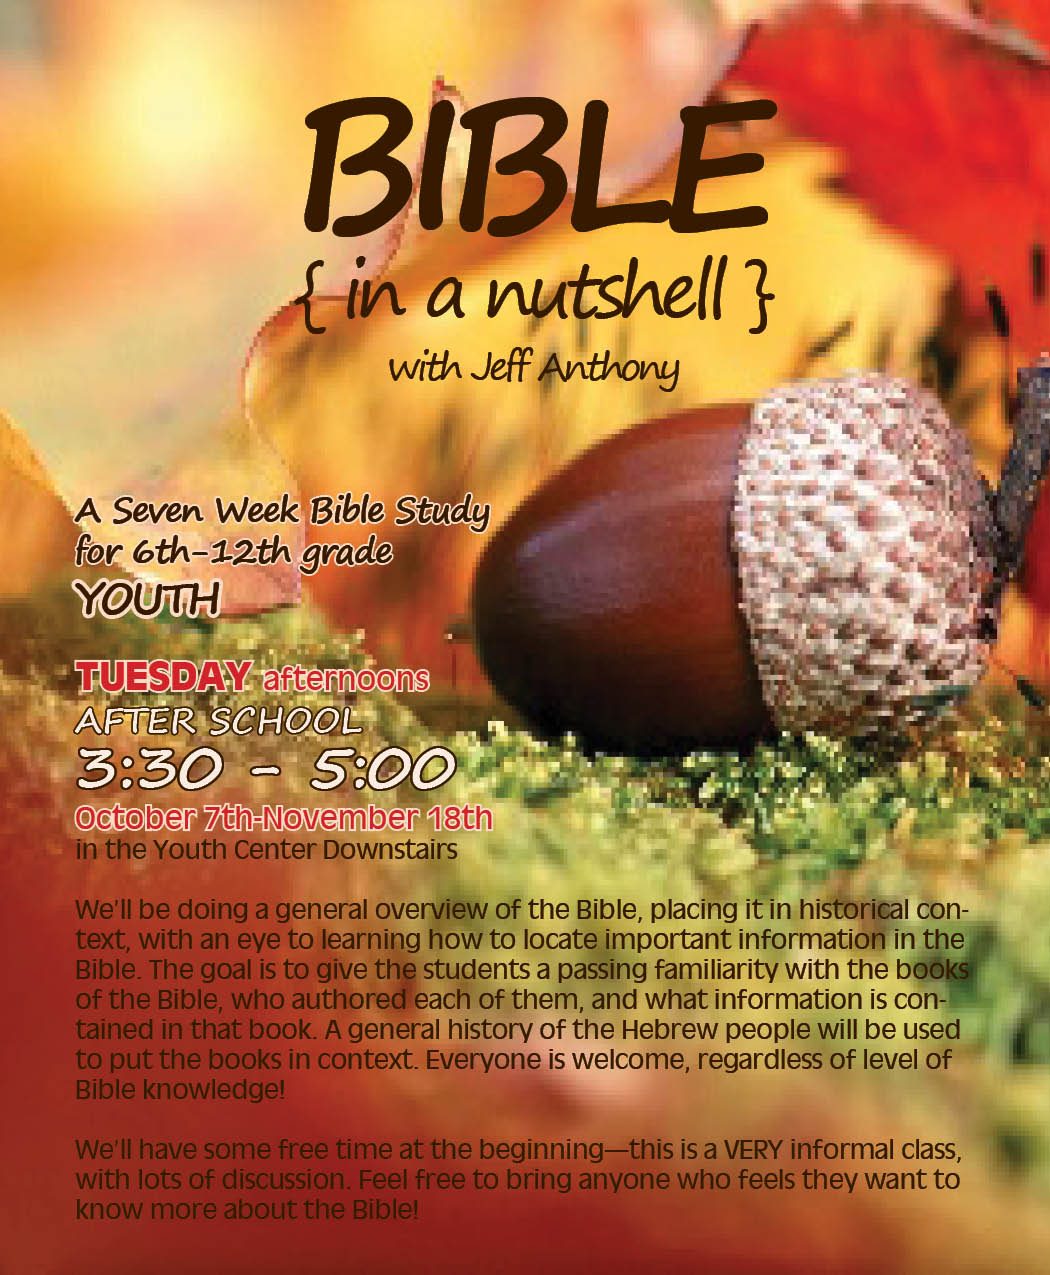 Ezekiel bible study methodist